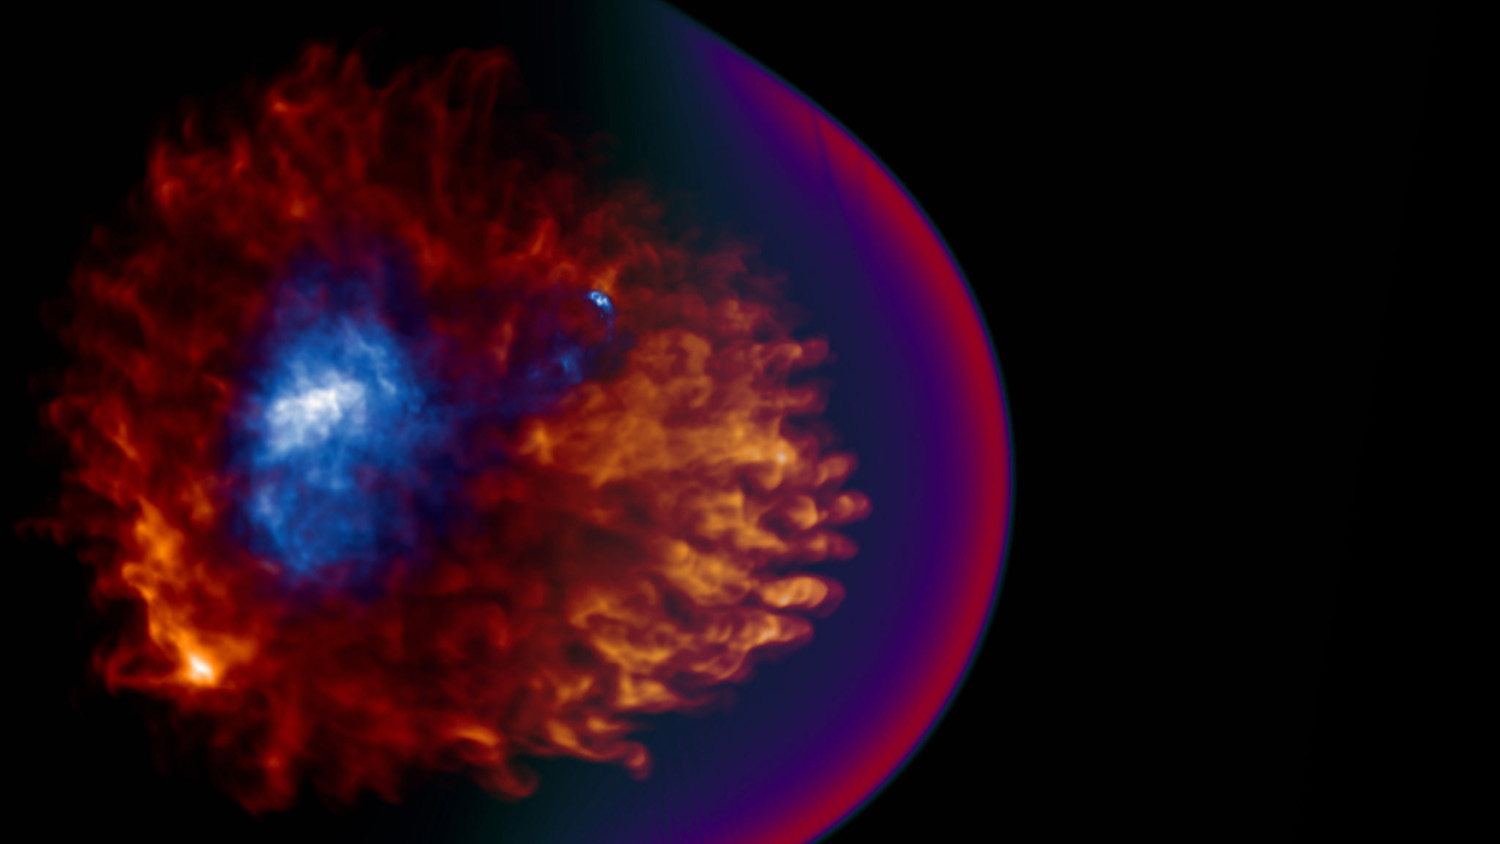 """""""Supernova Remnant Simulations,"""" by Christopher Kolb, was the first place winner of the graphics and illustration category in 2016's contest."""